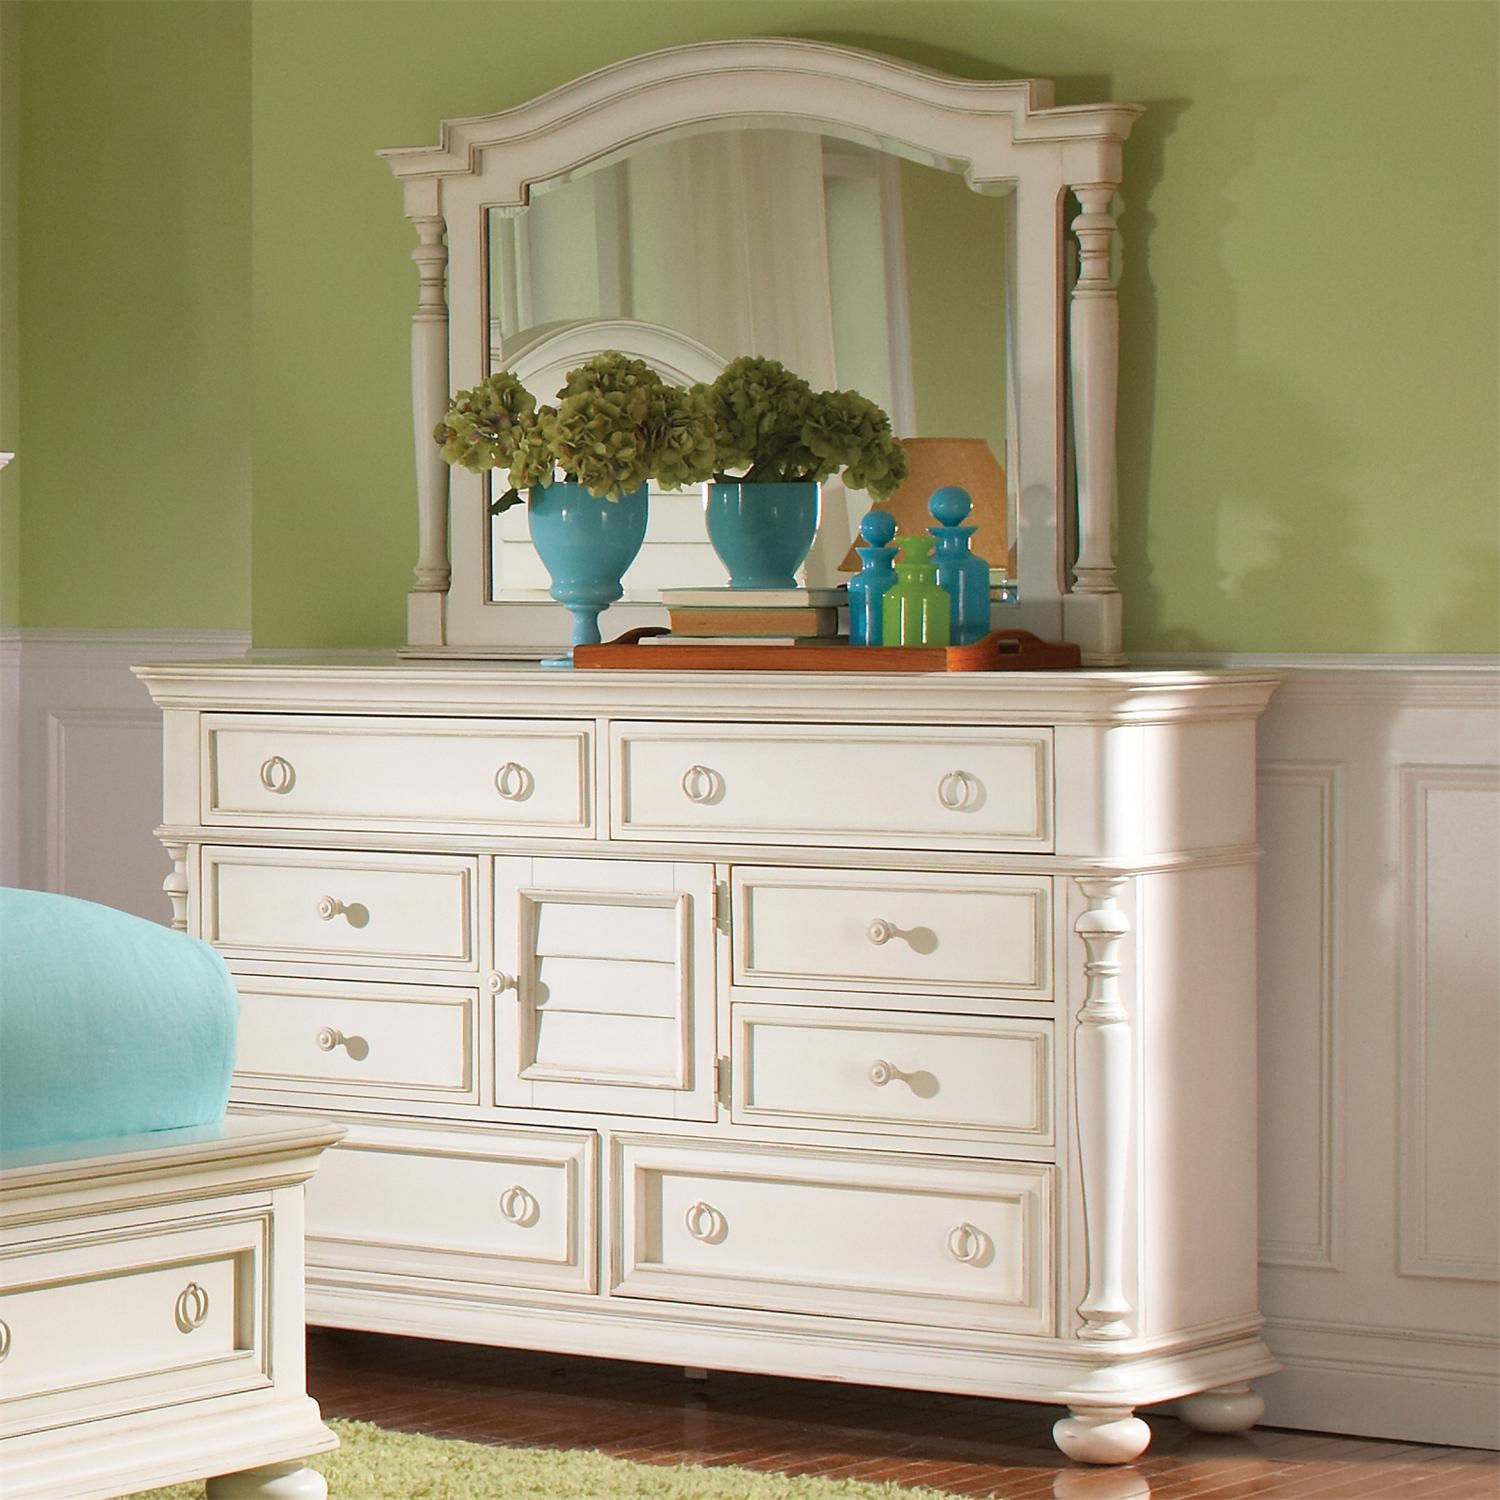 Image of: Riverside White Dresser With Mirror